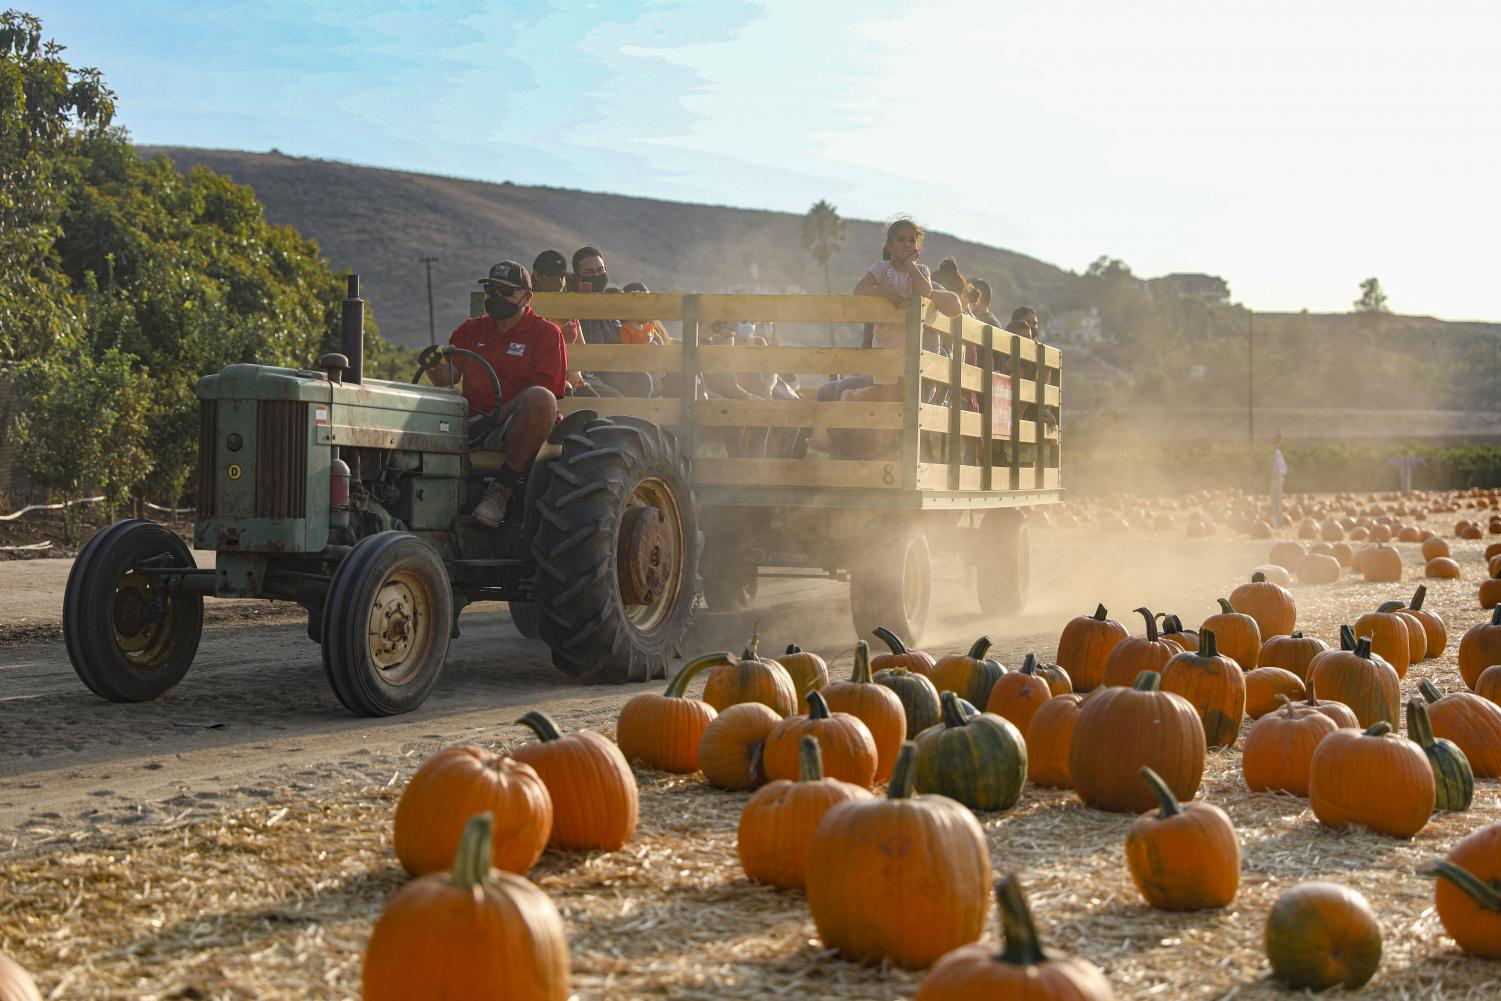 The Fall Harvest tractor ride full of guests drives though the pumpkin patch on Thursday, Oct. 15, in Moorpark CA. The tractors shows guests through the Underwood Family Farm's 40-acre farm before dropping them off at the sunflower fields.